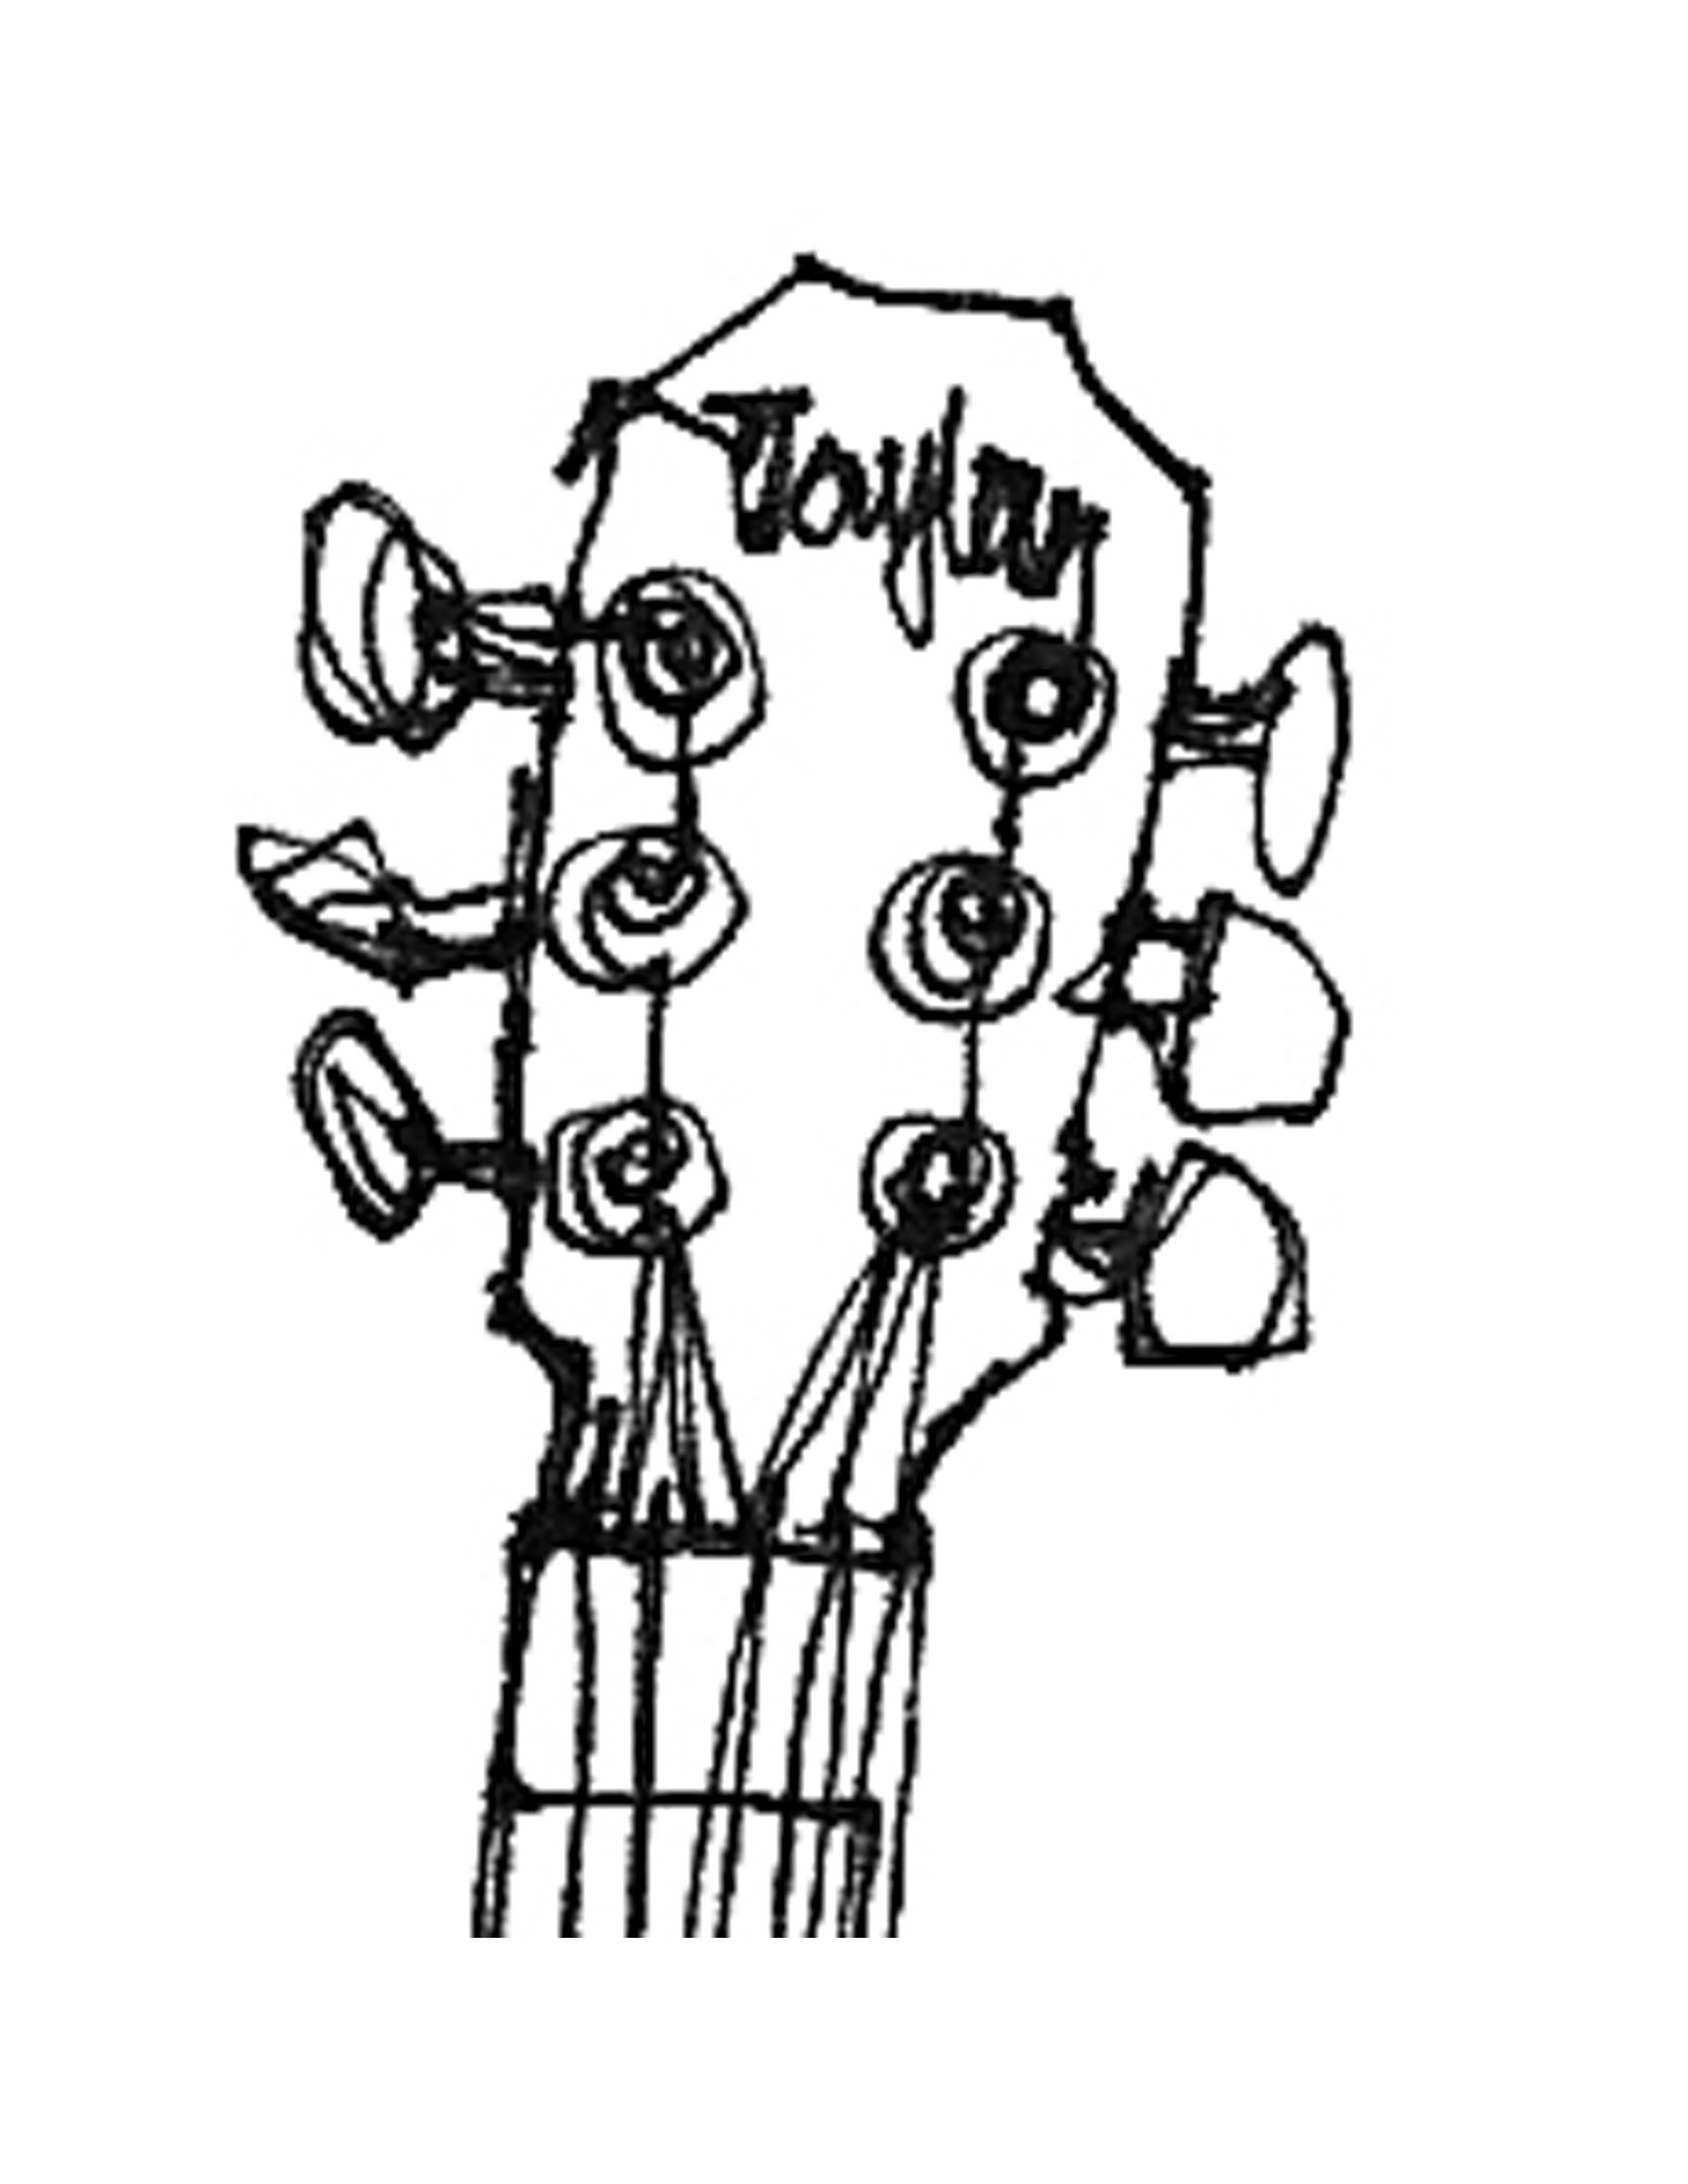 guitar line drawing clipart best dccp in 2019 drawings art  guitar line drawing clipart best